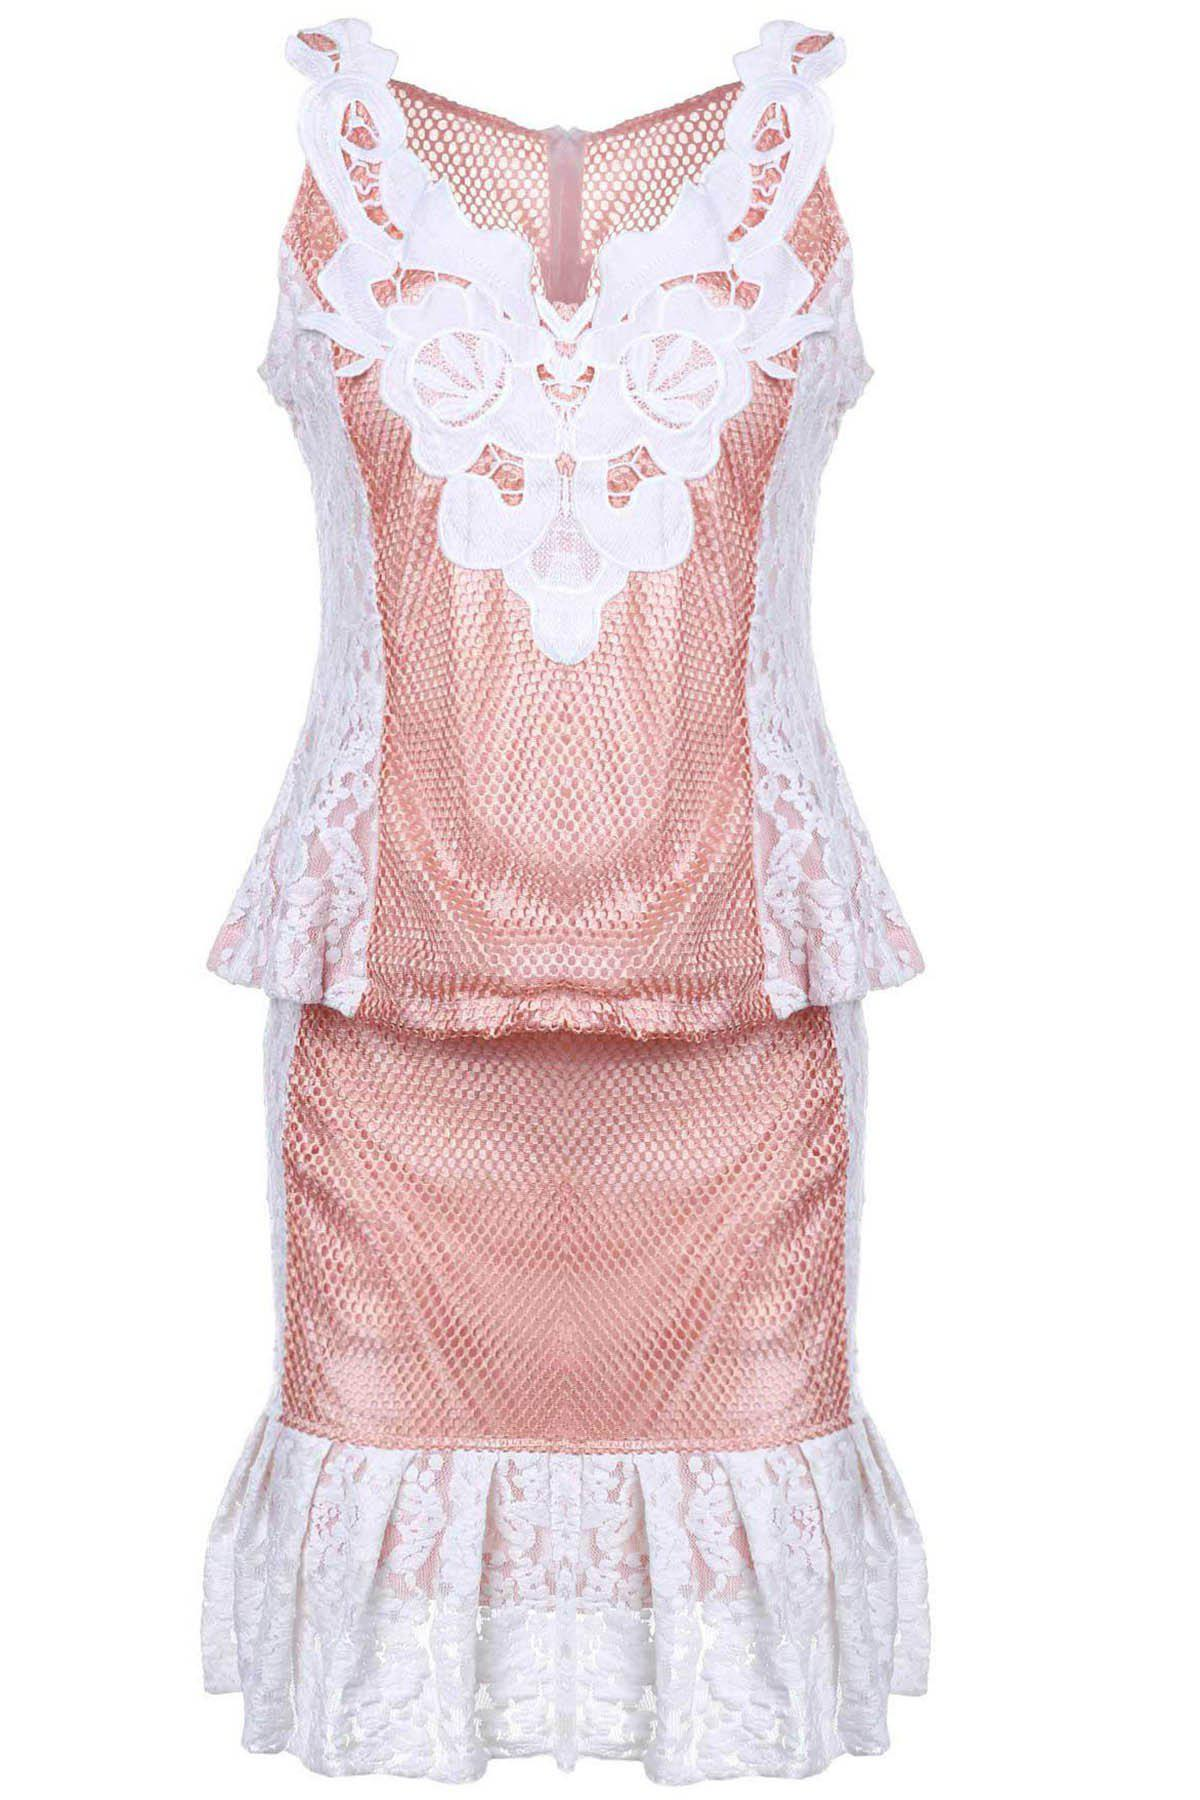 Outfits Fashionable Women's Sleeveless V-Neck Lace Dress